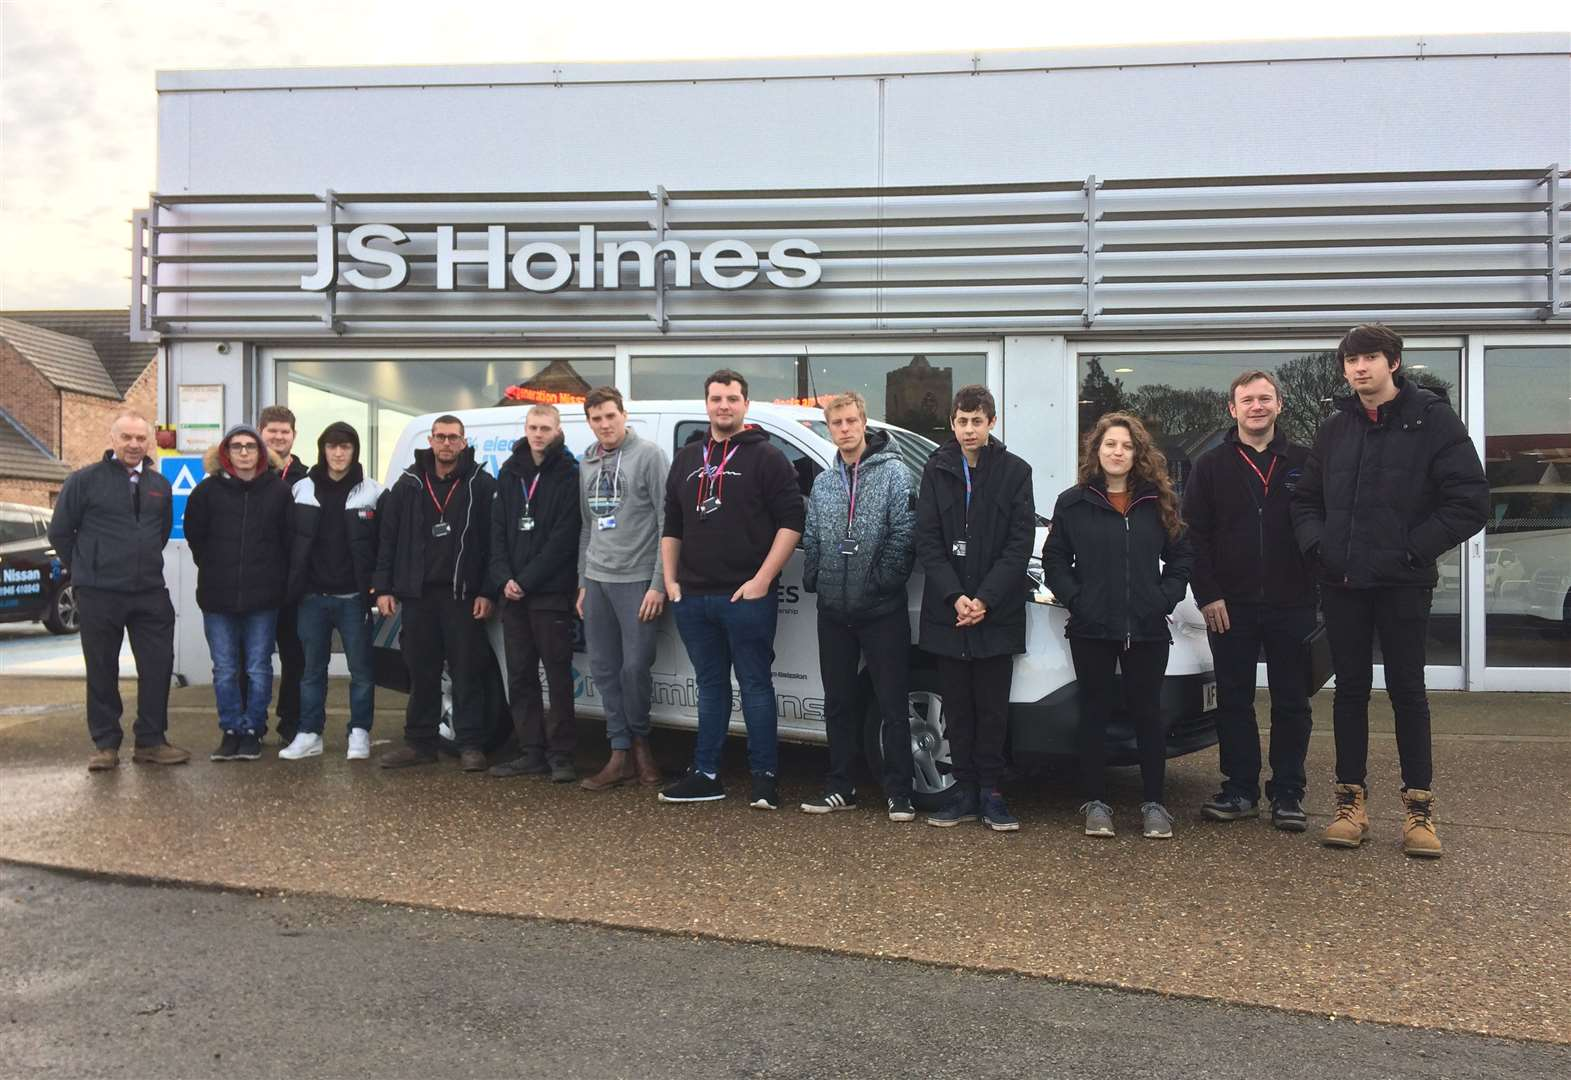 Motor vehicle students from the College of West Anglia attend commercial workshop at J S Holmes in Wisbech St Mary